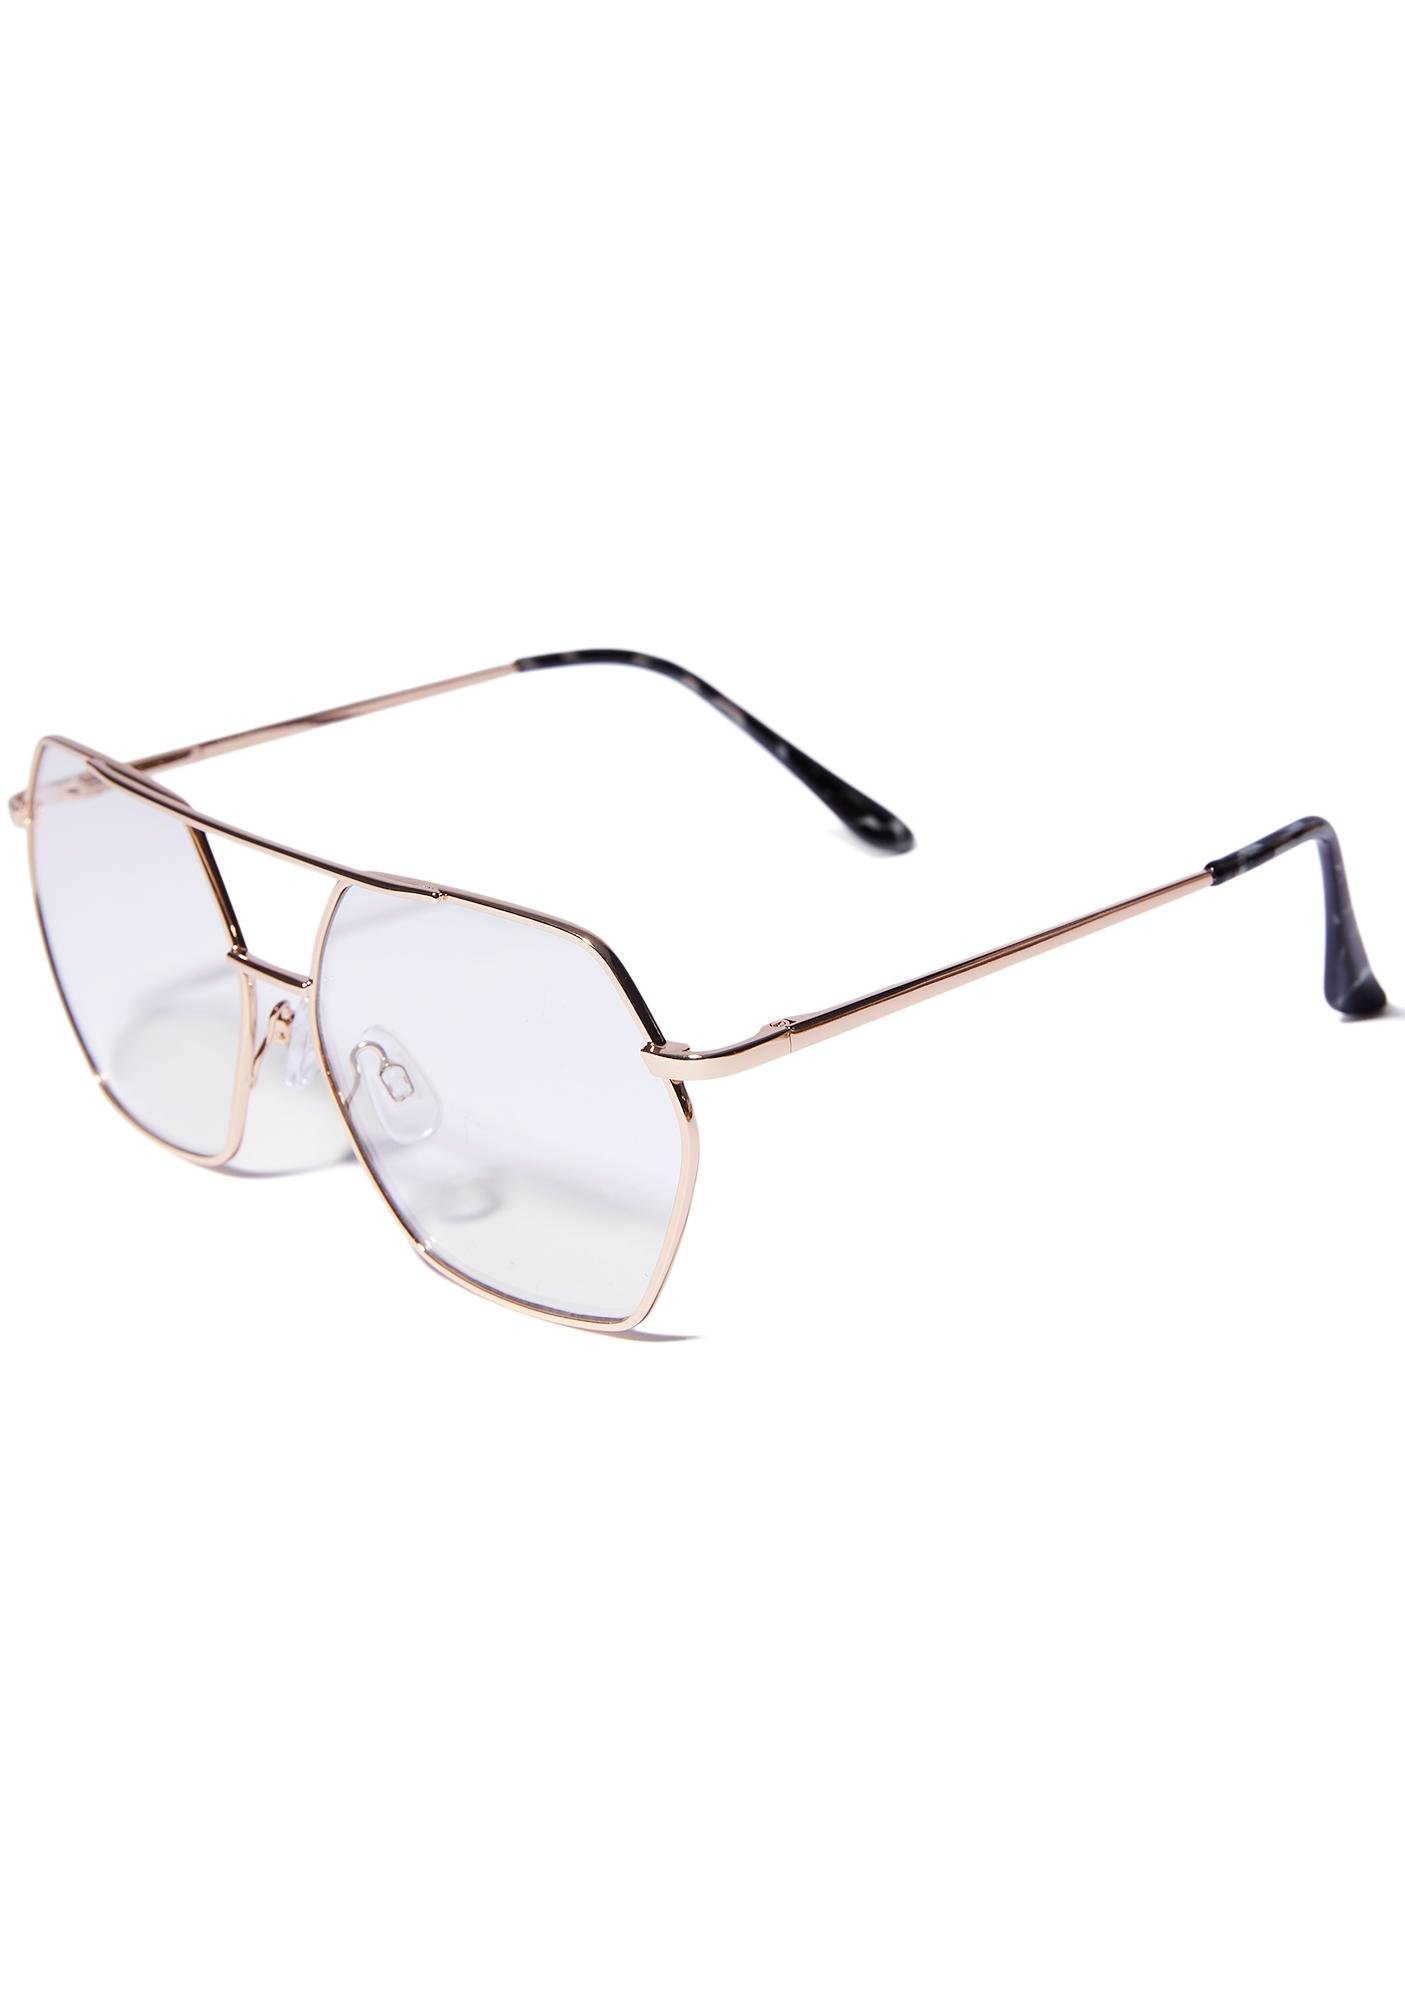 Parallax Glasses